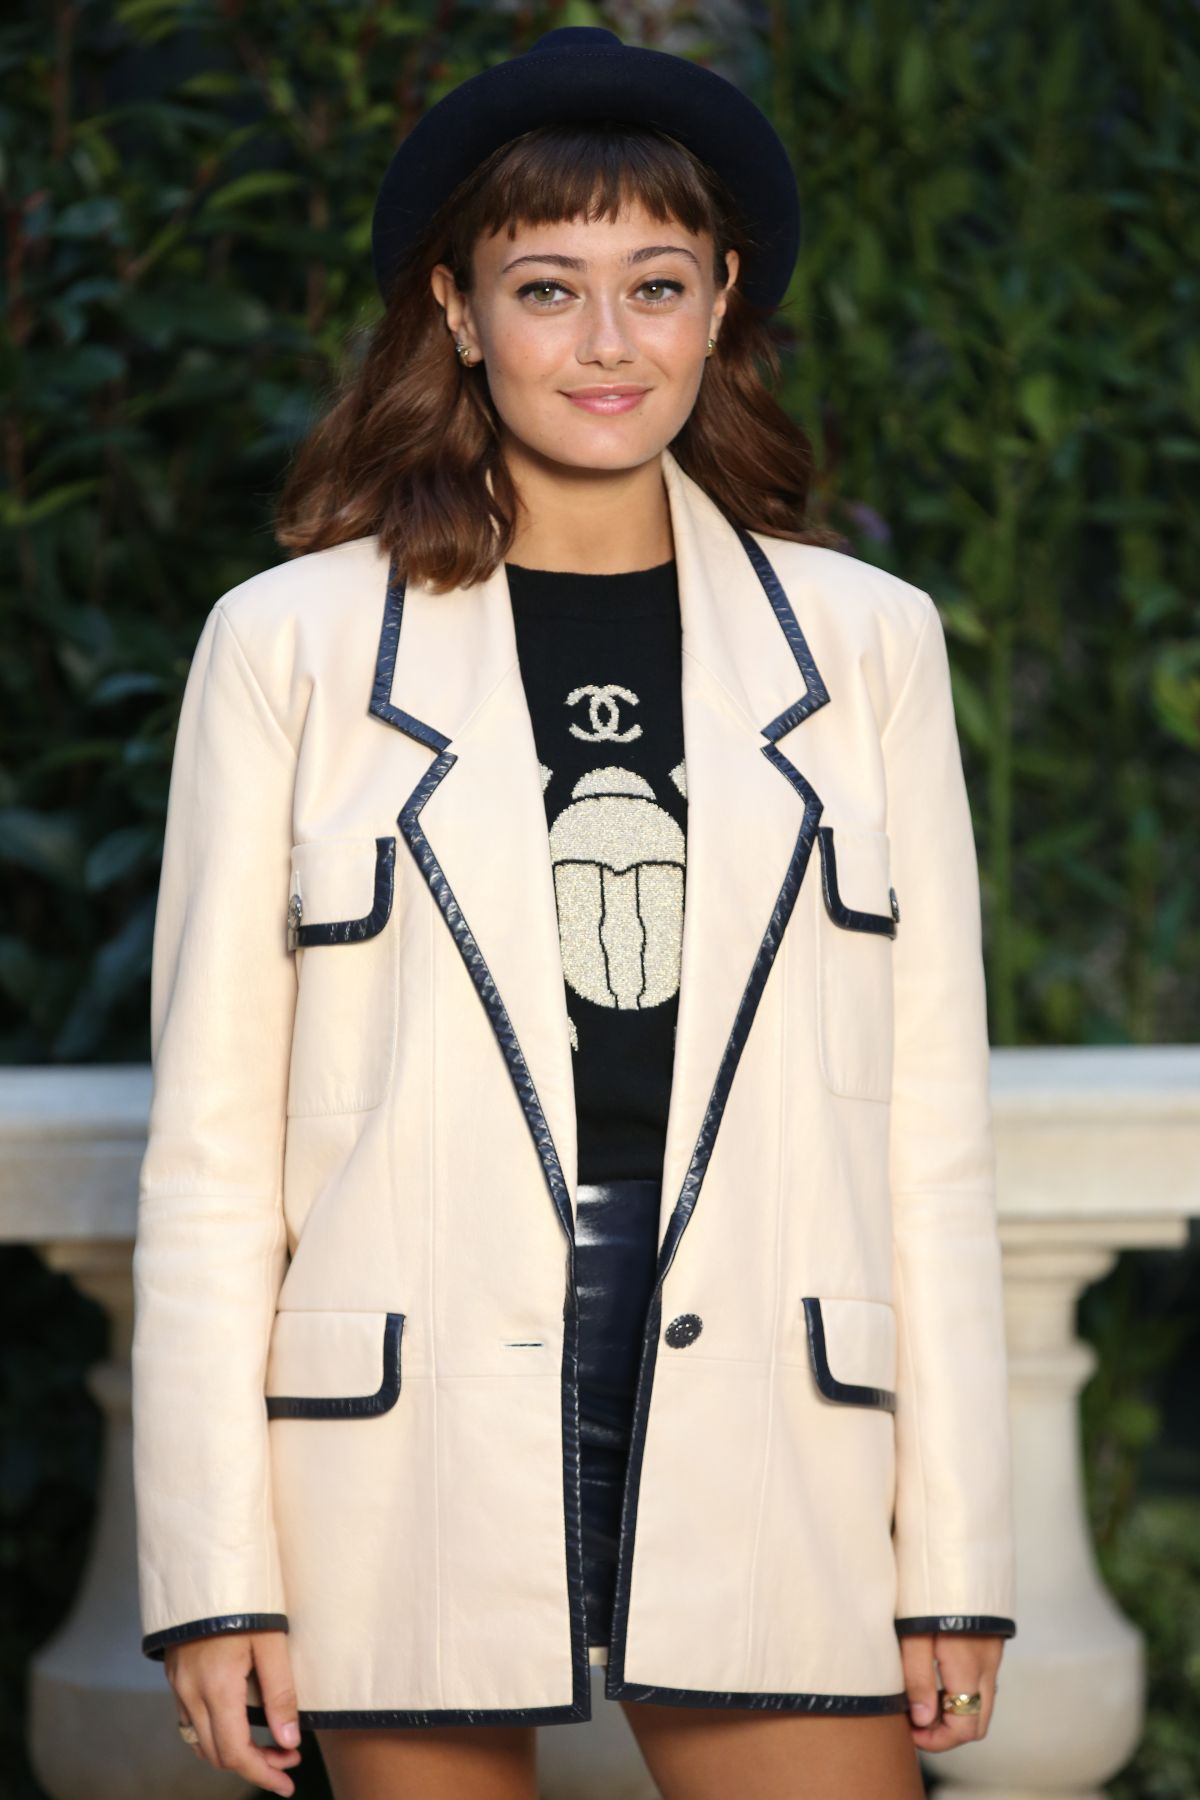 2019 Ella Purnell nude photos 2019